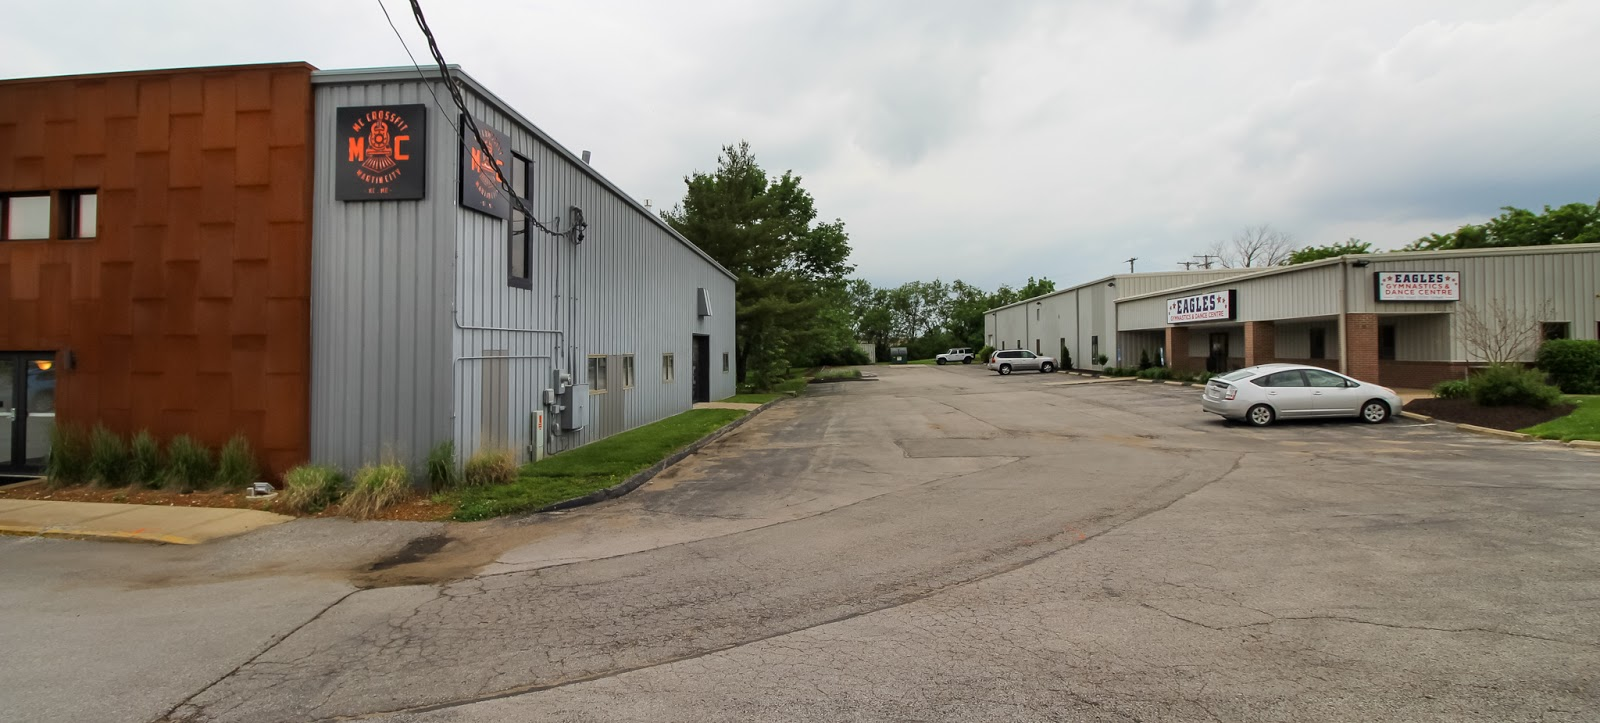 Eagles Gymnastics & Dance Centre is right across the parking lot from MC CrossFit.